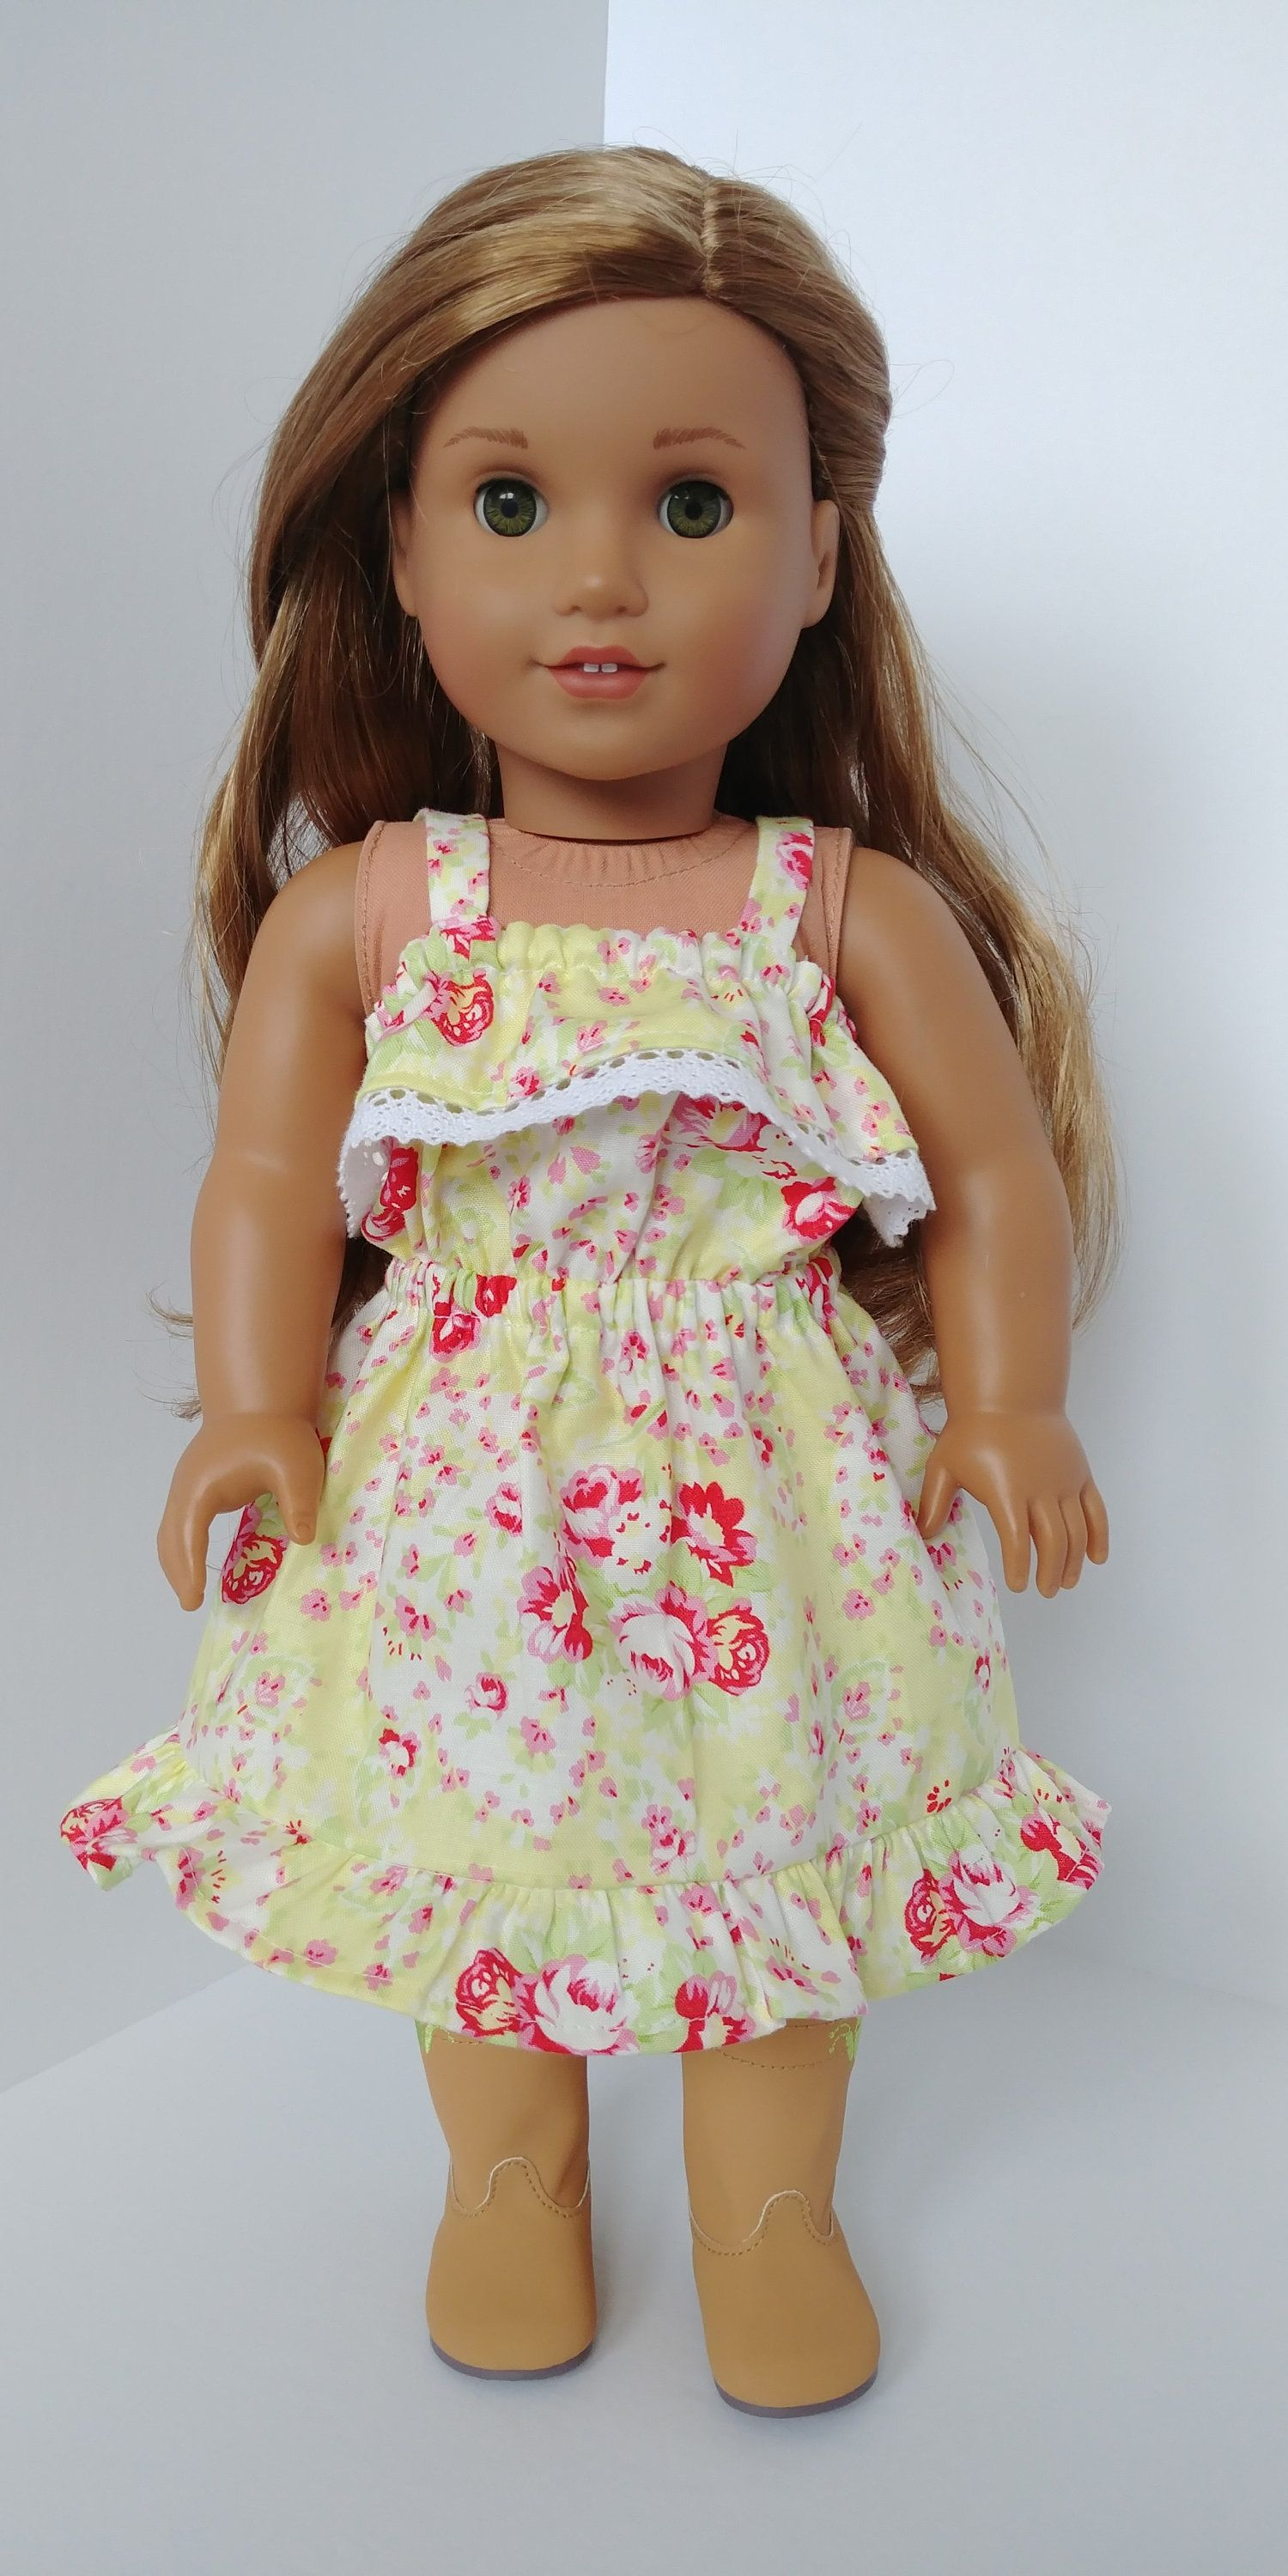 Etsy BellaboosClosetCA | Doll Clothes | Pinterest